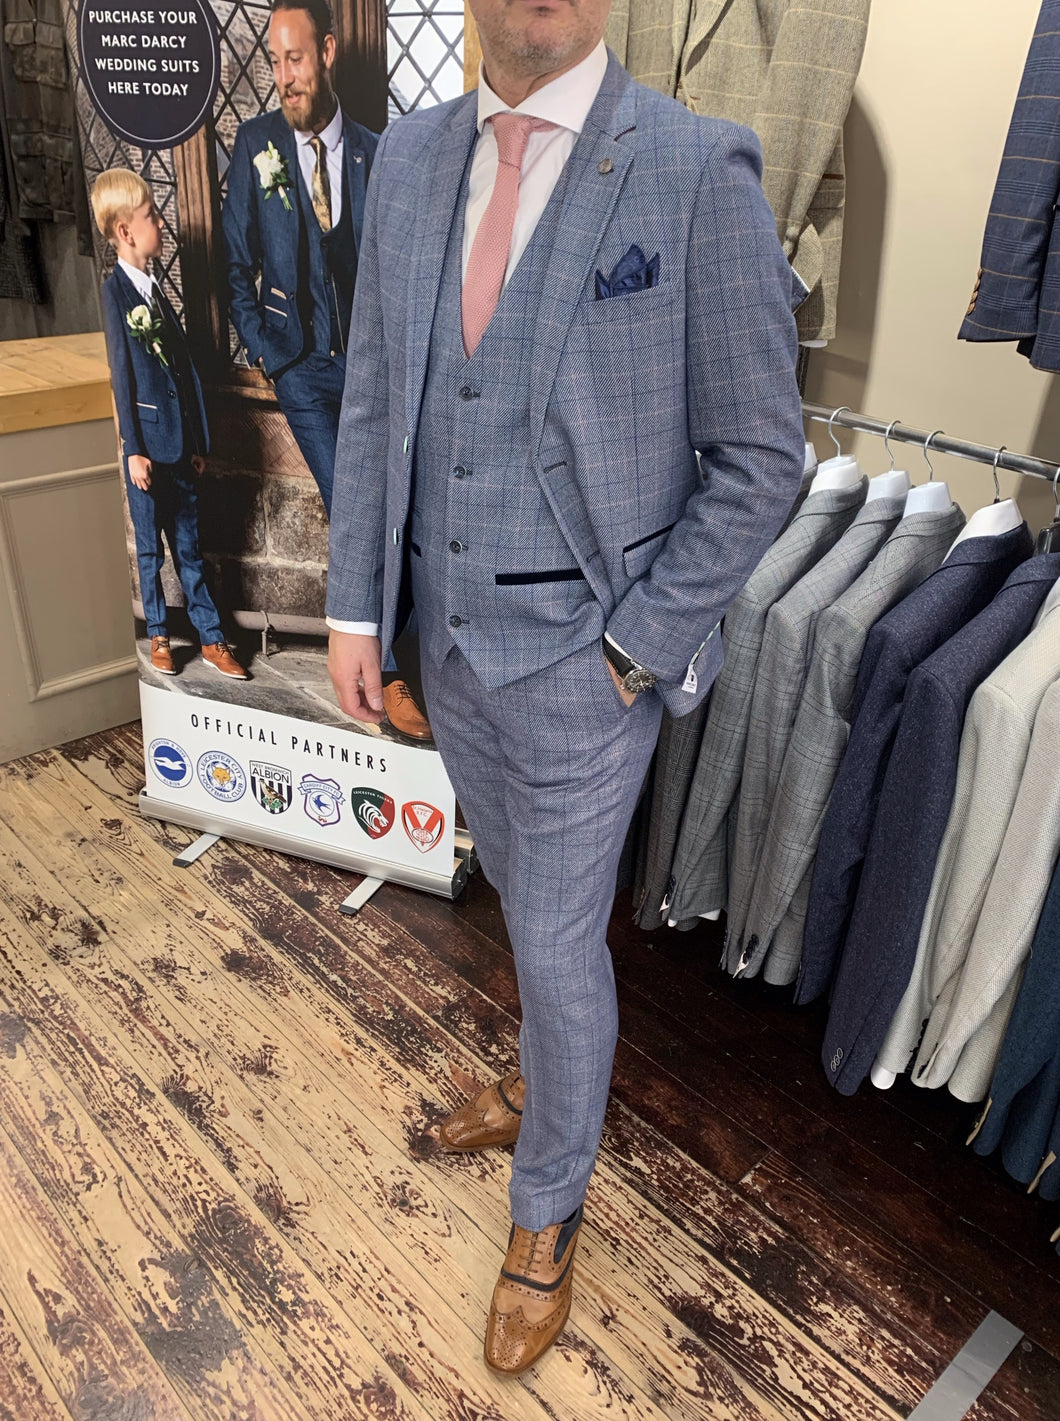 Marc Darcy 'Harry' blue three piece suit (waistcoat, jacket and trousers sold separately) from Gere Menswear